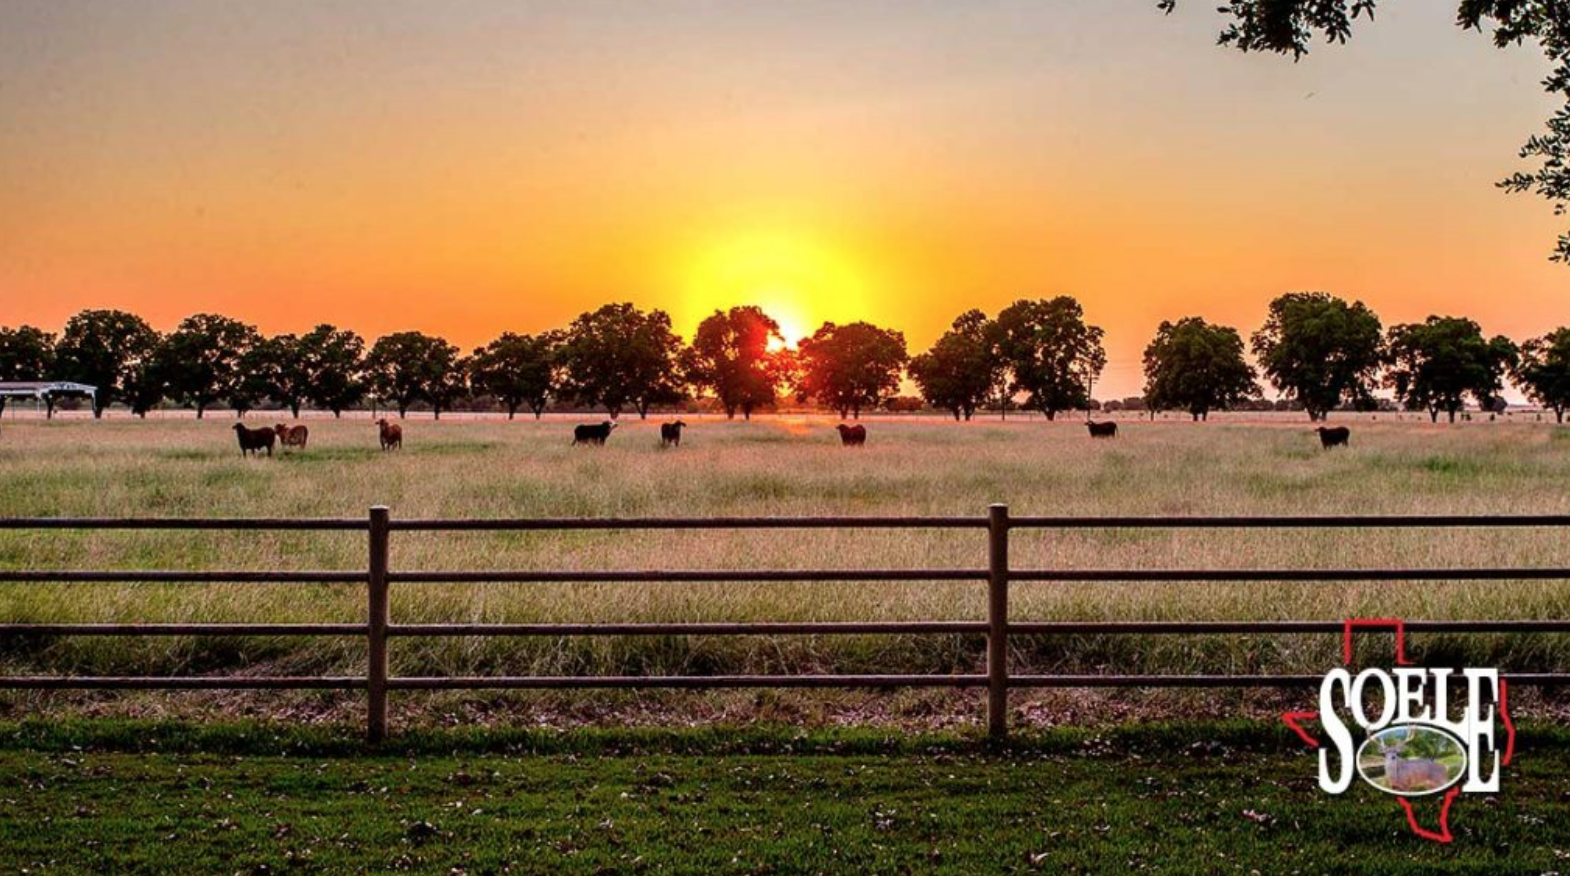 Image via Texas Best Ranches